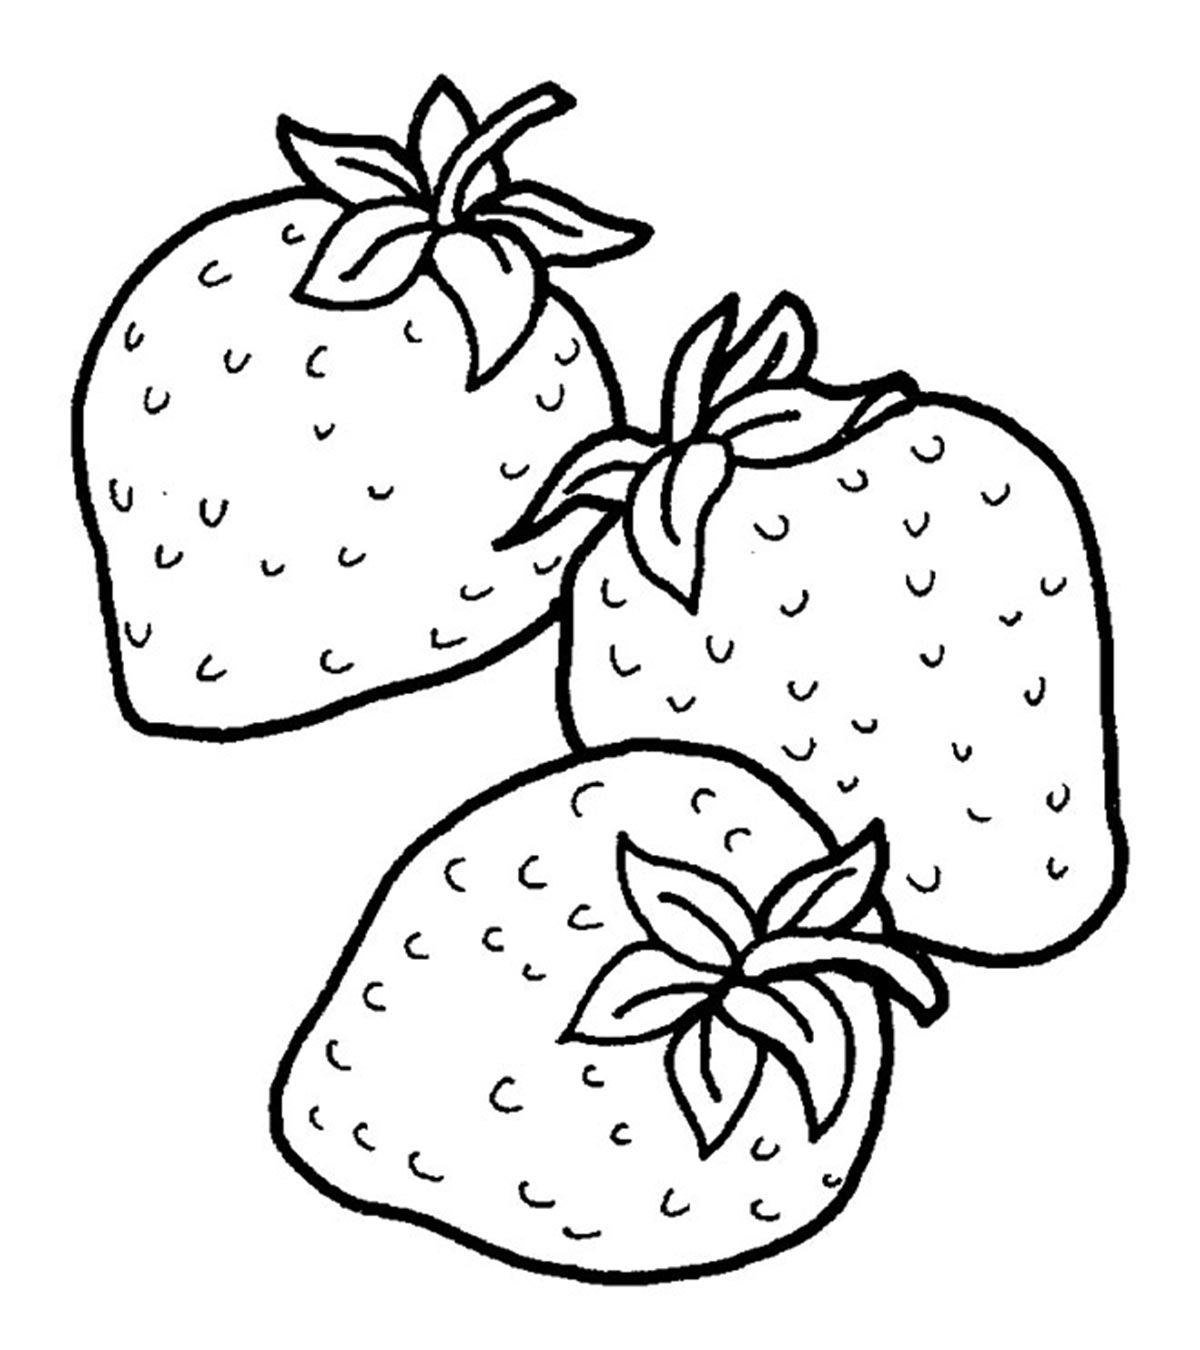 Strawberries clipart 6 strawberry. Top coloring pages for